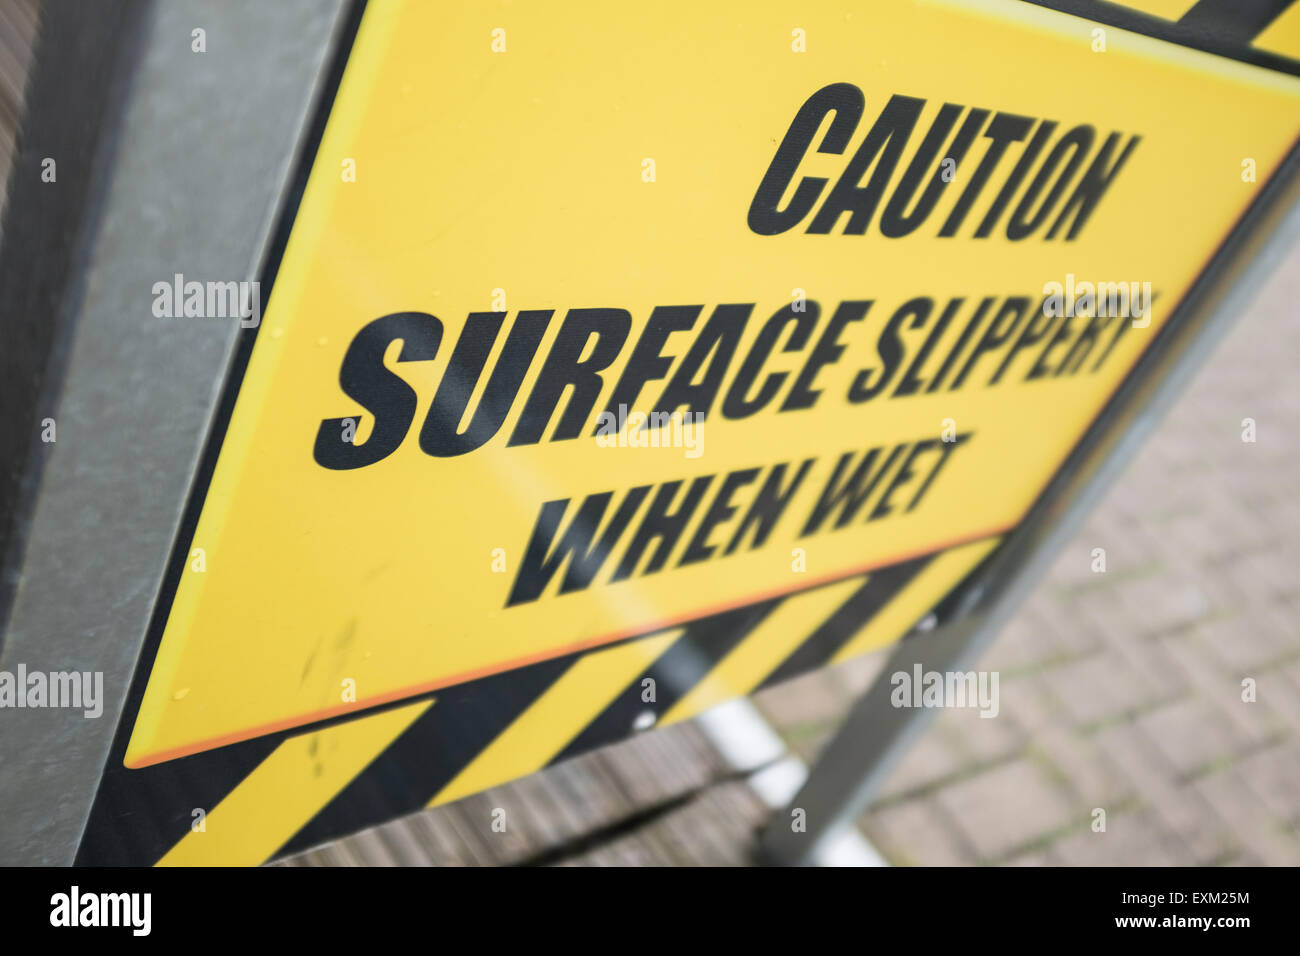 caution surface slippery when wet, yellow sign - Stock Image